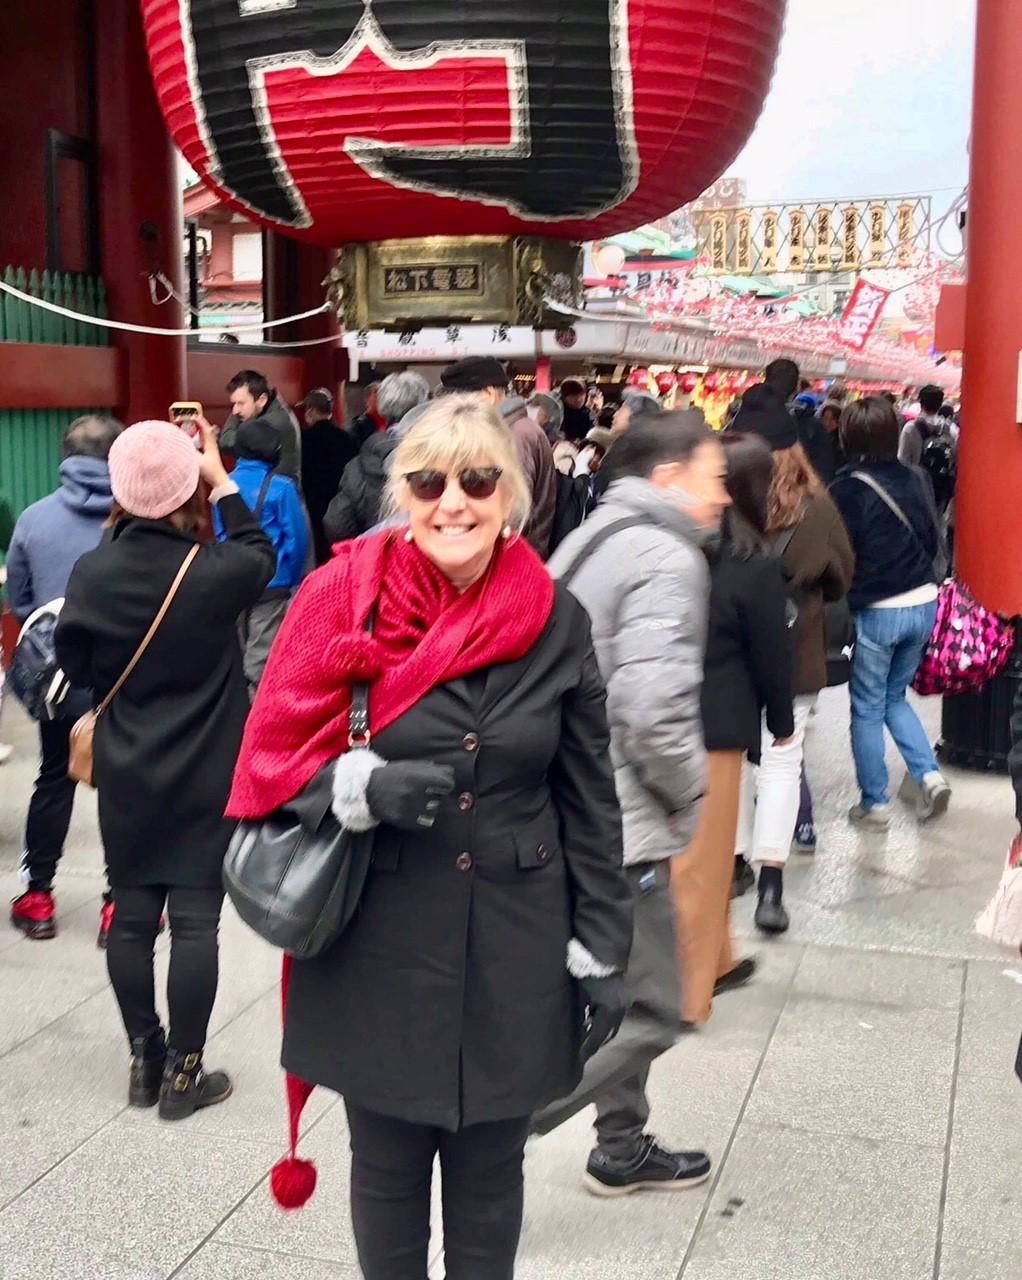 Blonde woman wearing sunglasses standing under a large red lantern in a crowd in Japan, red scarf, black coat,